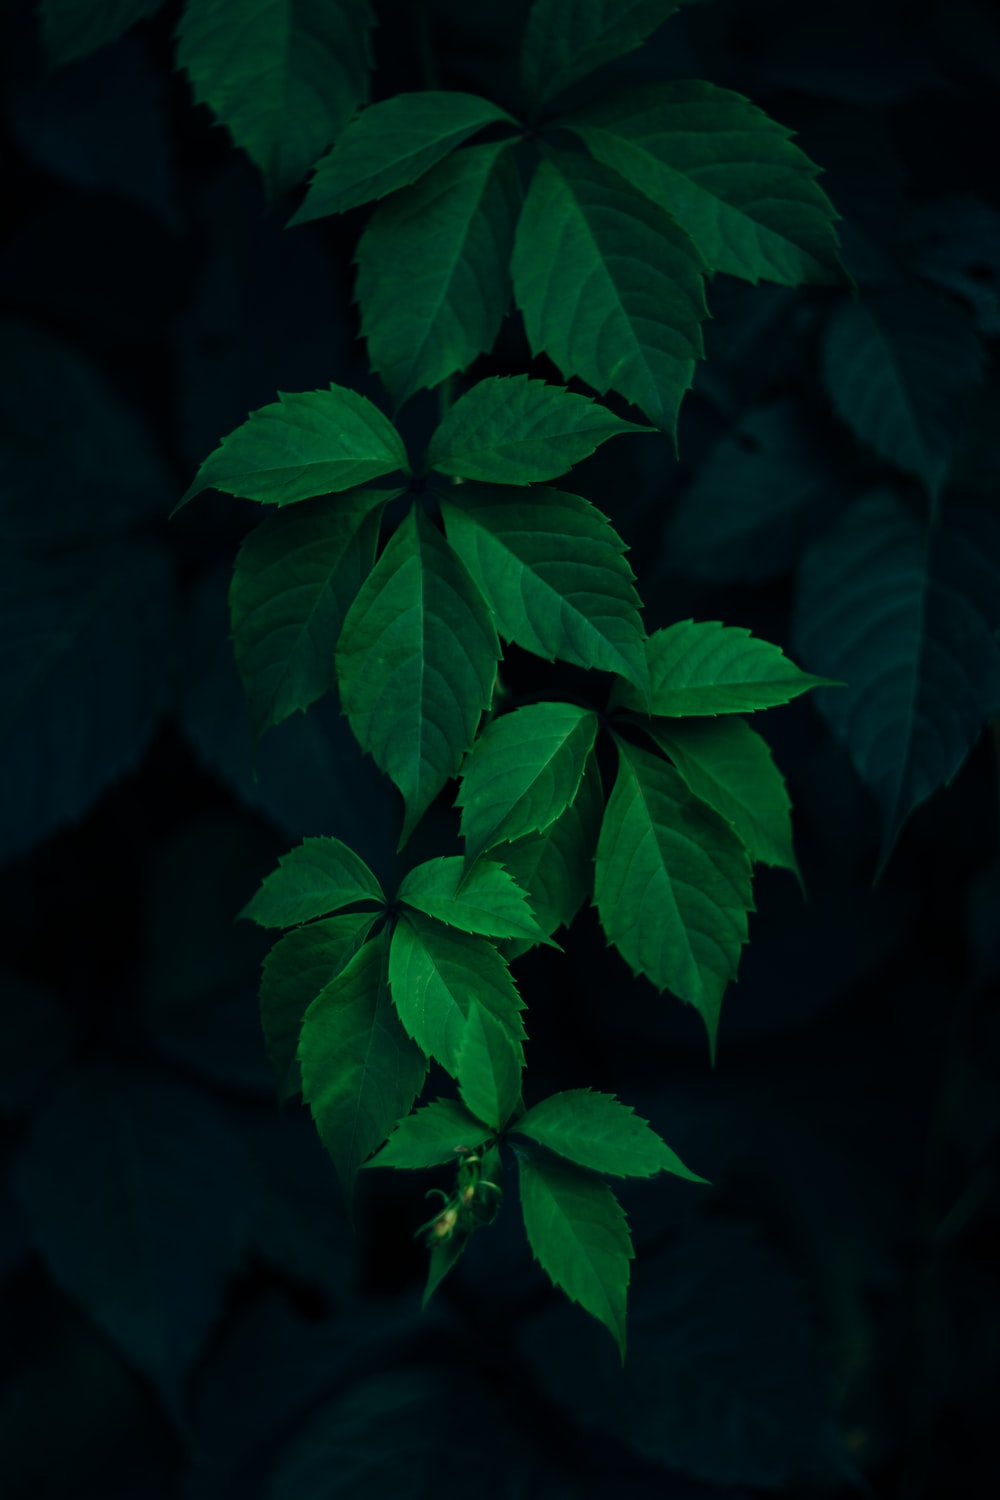 900 Leaf Background Images Download Hd Backgrounds On Unsplash